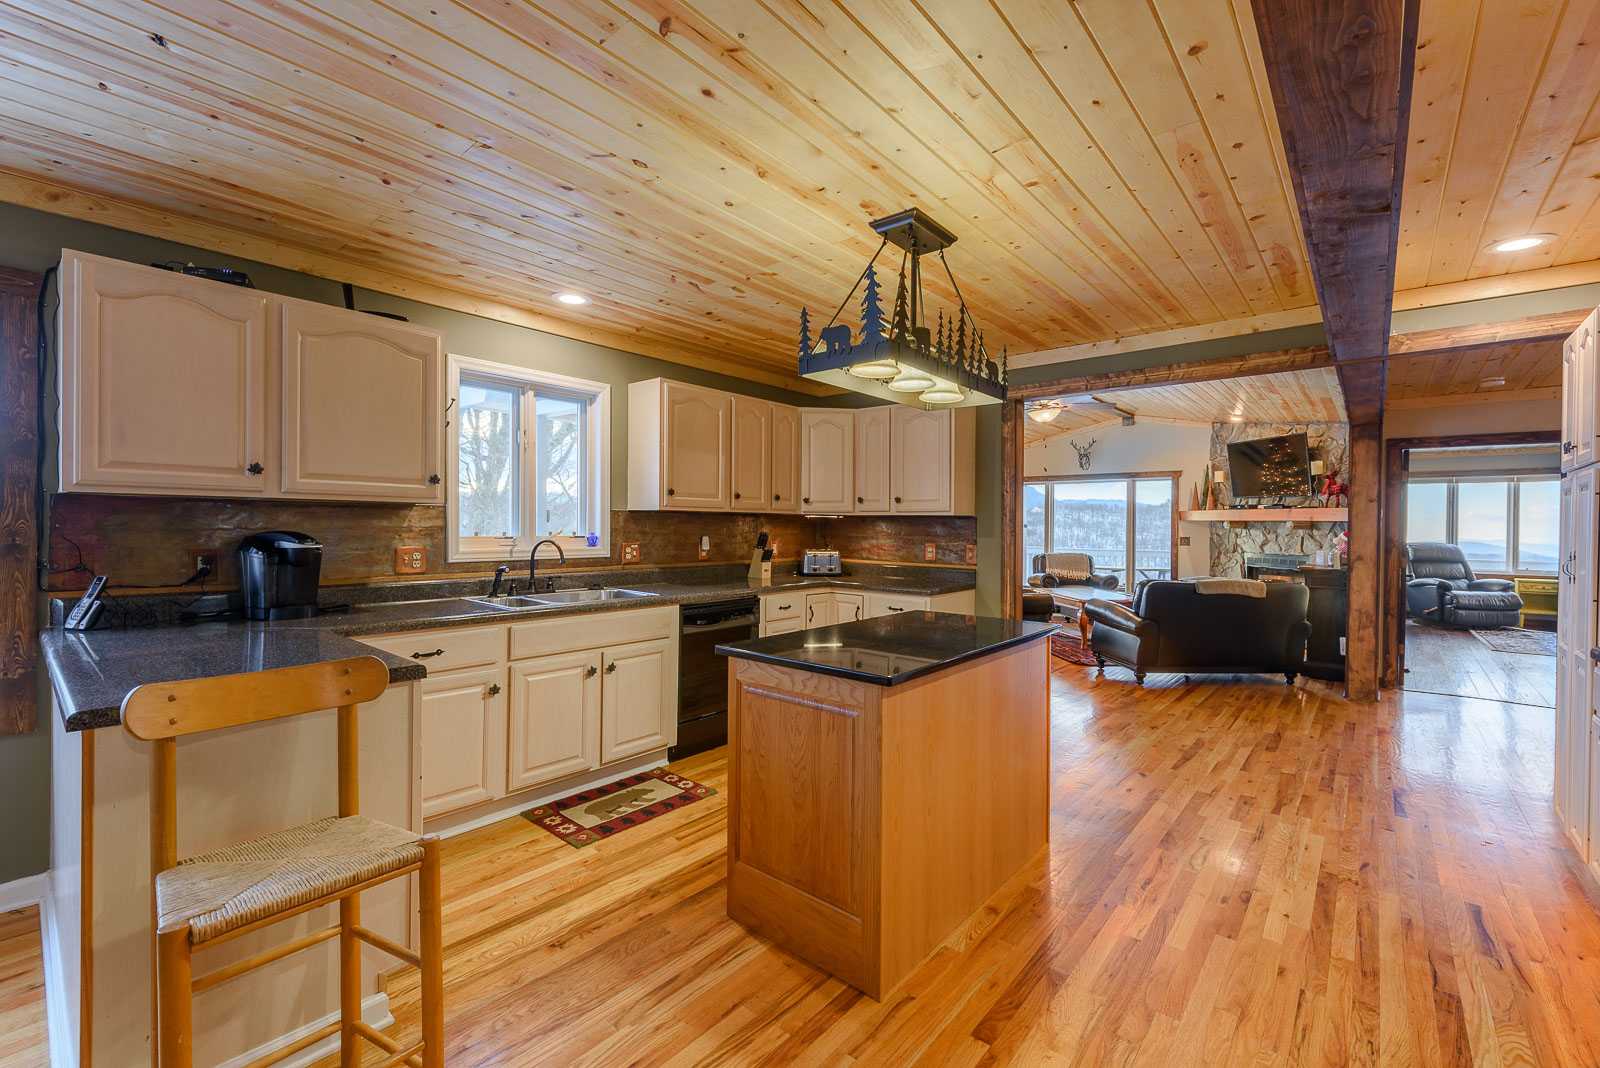 Kitchen with Hardwood Floors and Tongue & Groove Ceilings